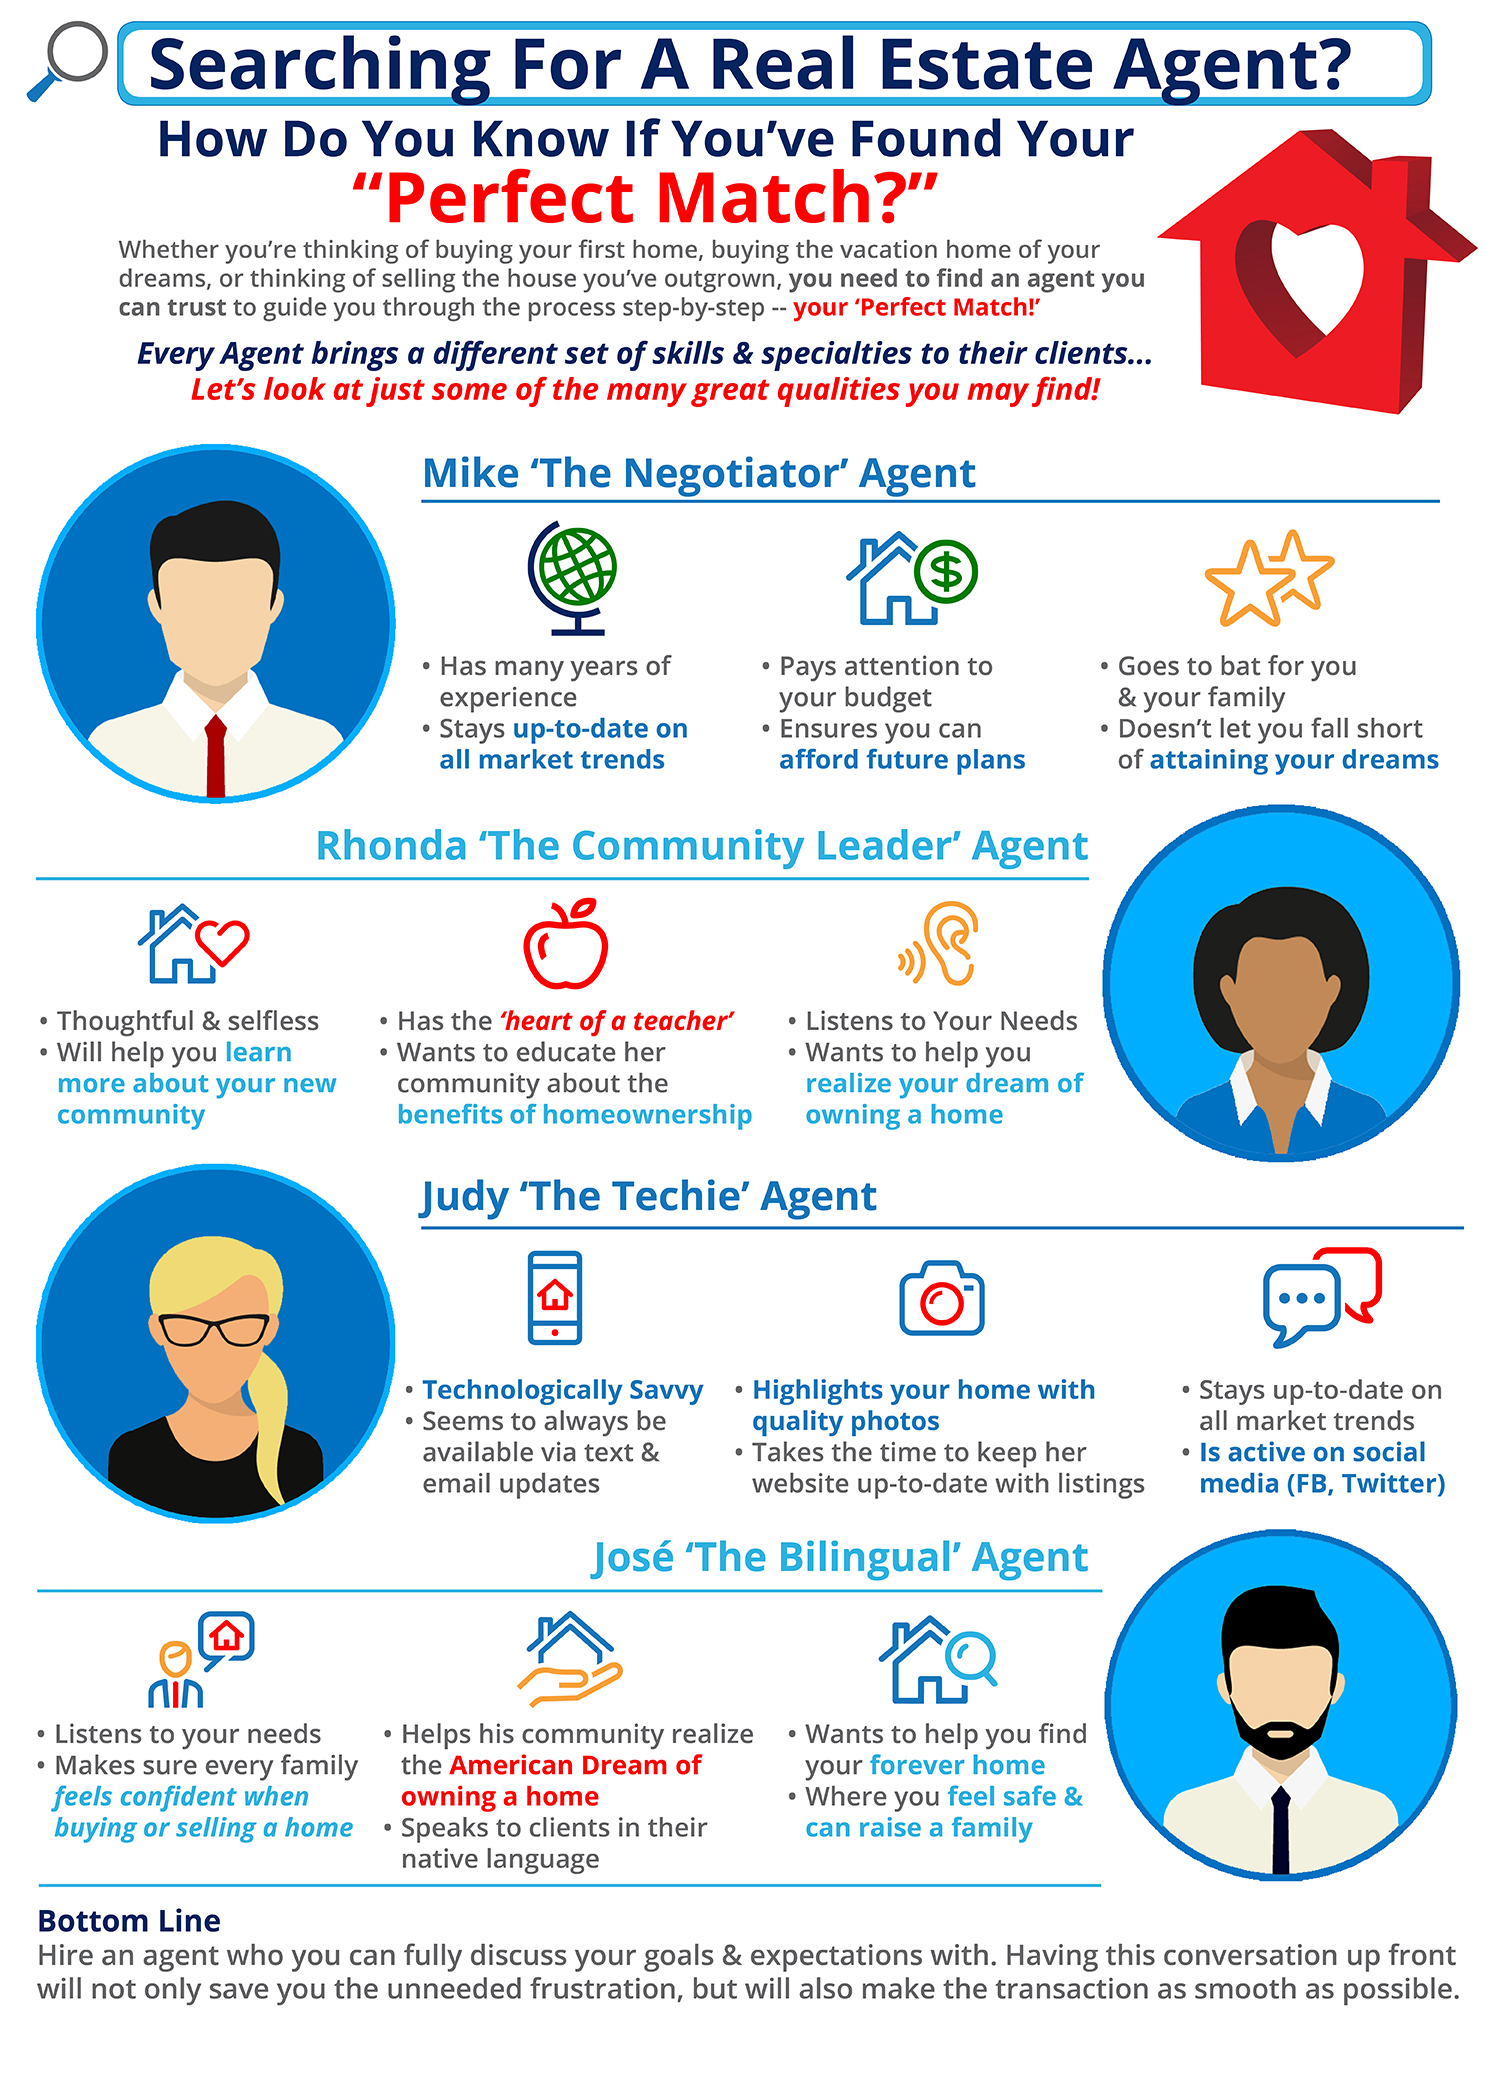 How Do You Know If You've Found Your 'Perfect Match'? [INFOGRAPHIC] | Simplifying The Market